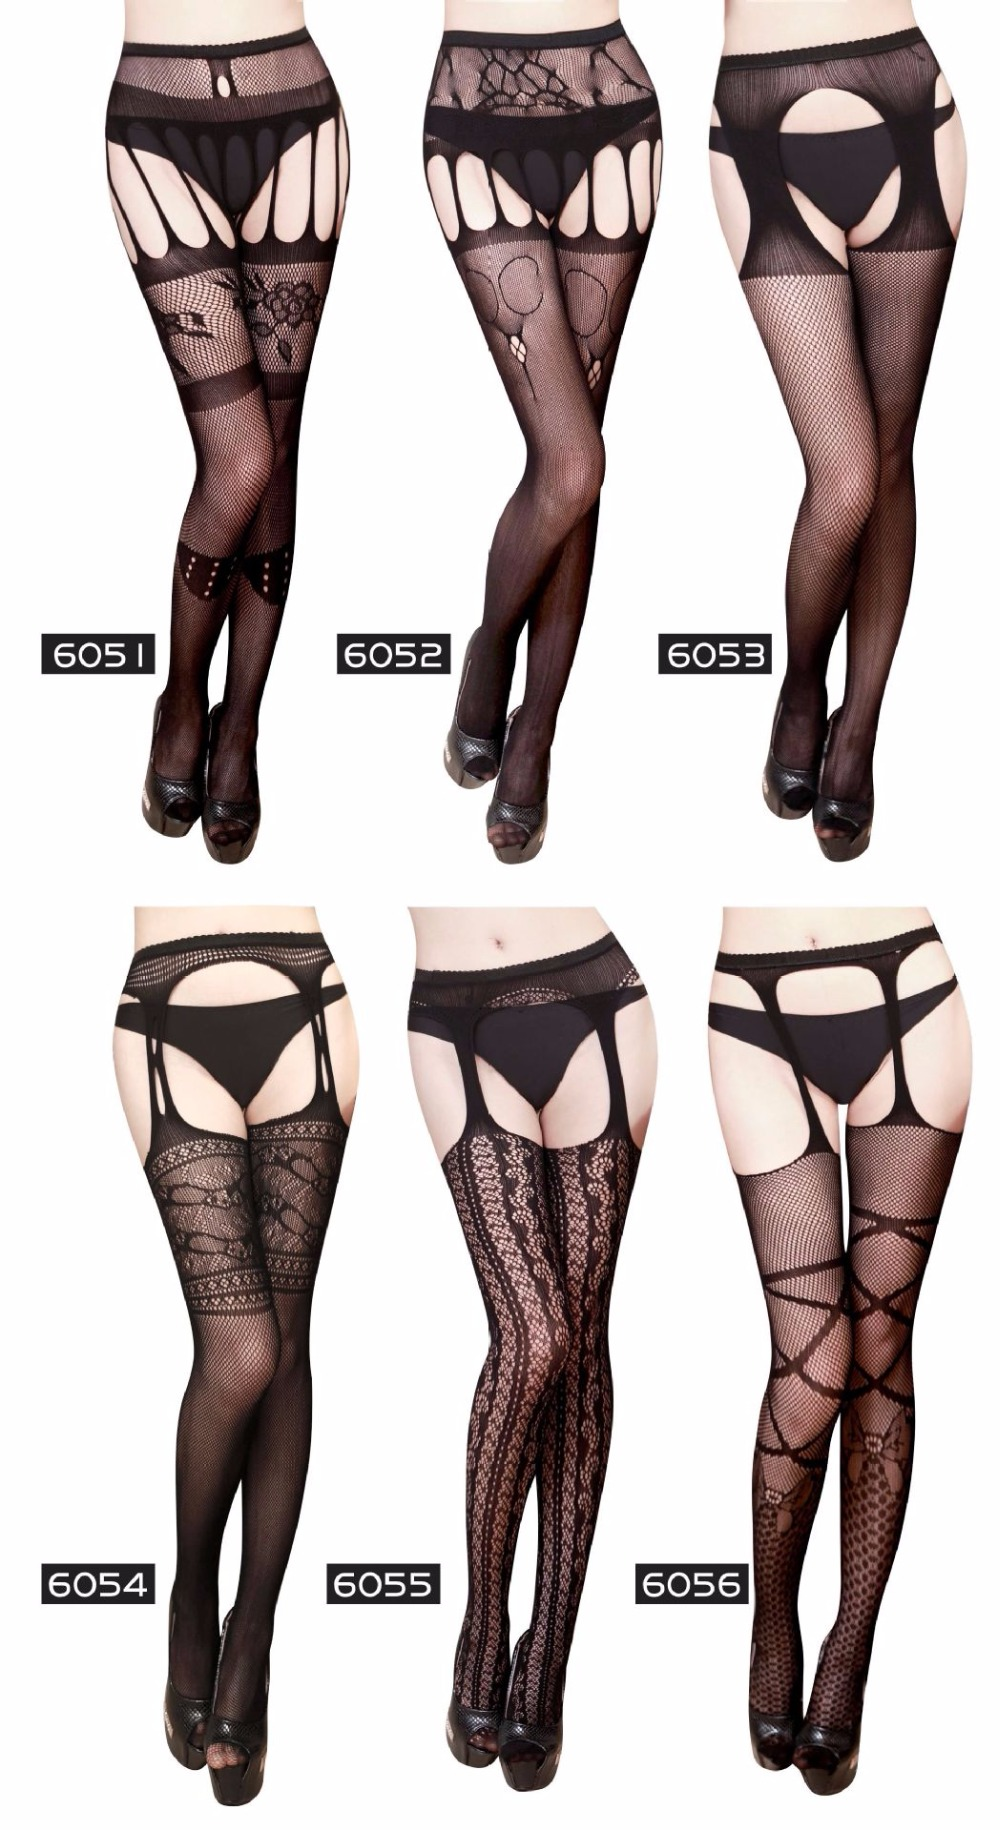 289d5c1c84d New 2018 Women Sexy Silk Stockings Fashion Pantyhose Ladies Mesh Lingerie  for girls Pantyhose Sexy Women s Tights Stocking S04